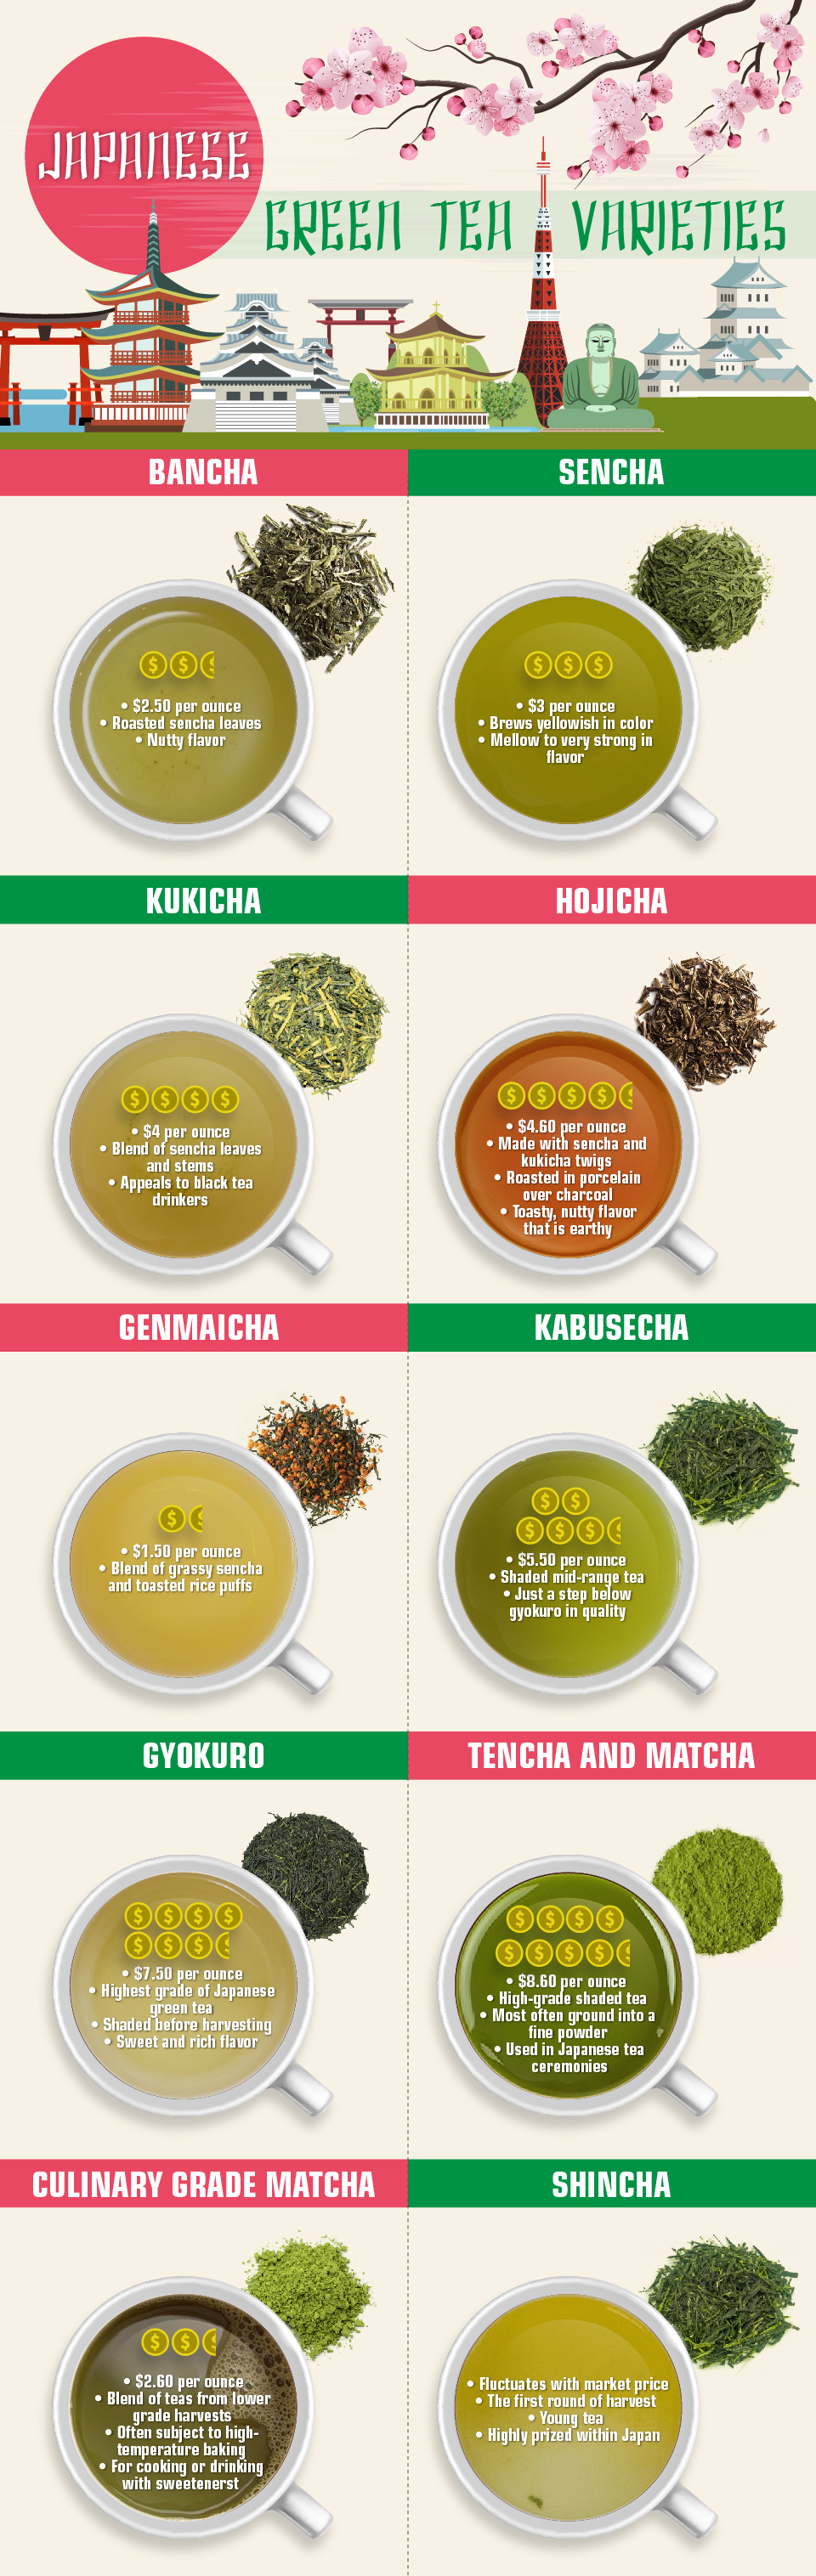 Japanese Green Tea Varieties